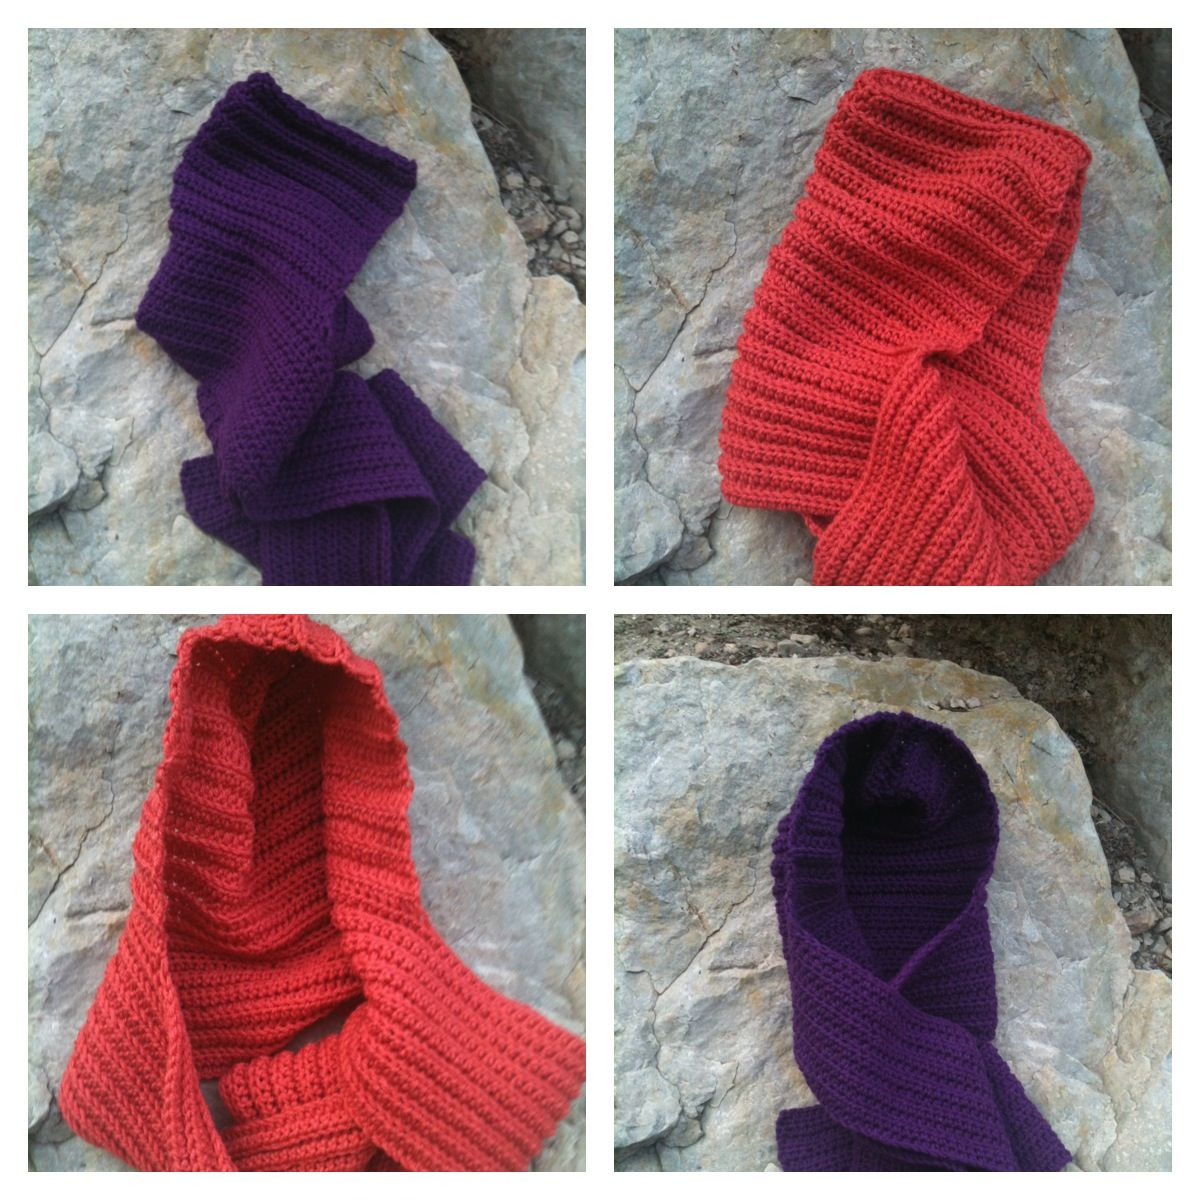 Crochet hooded scarves....just in time for fall!